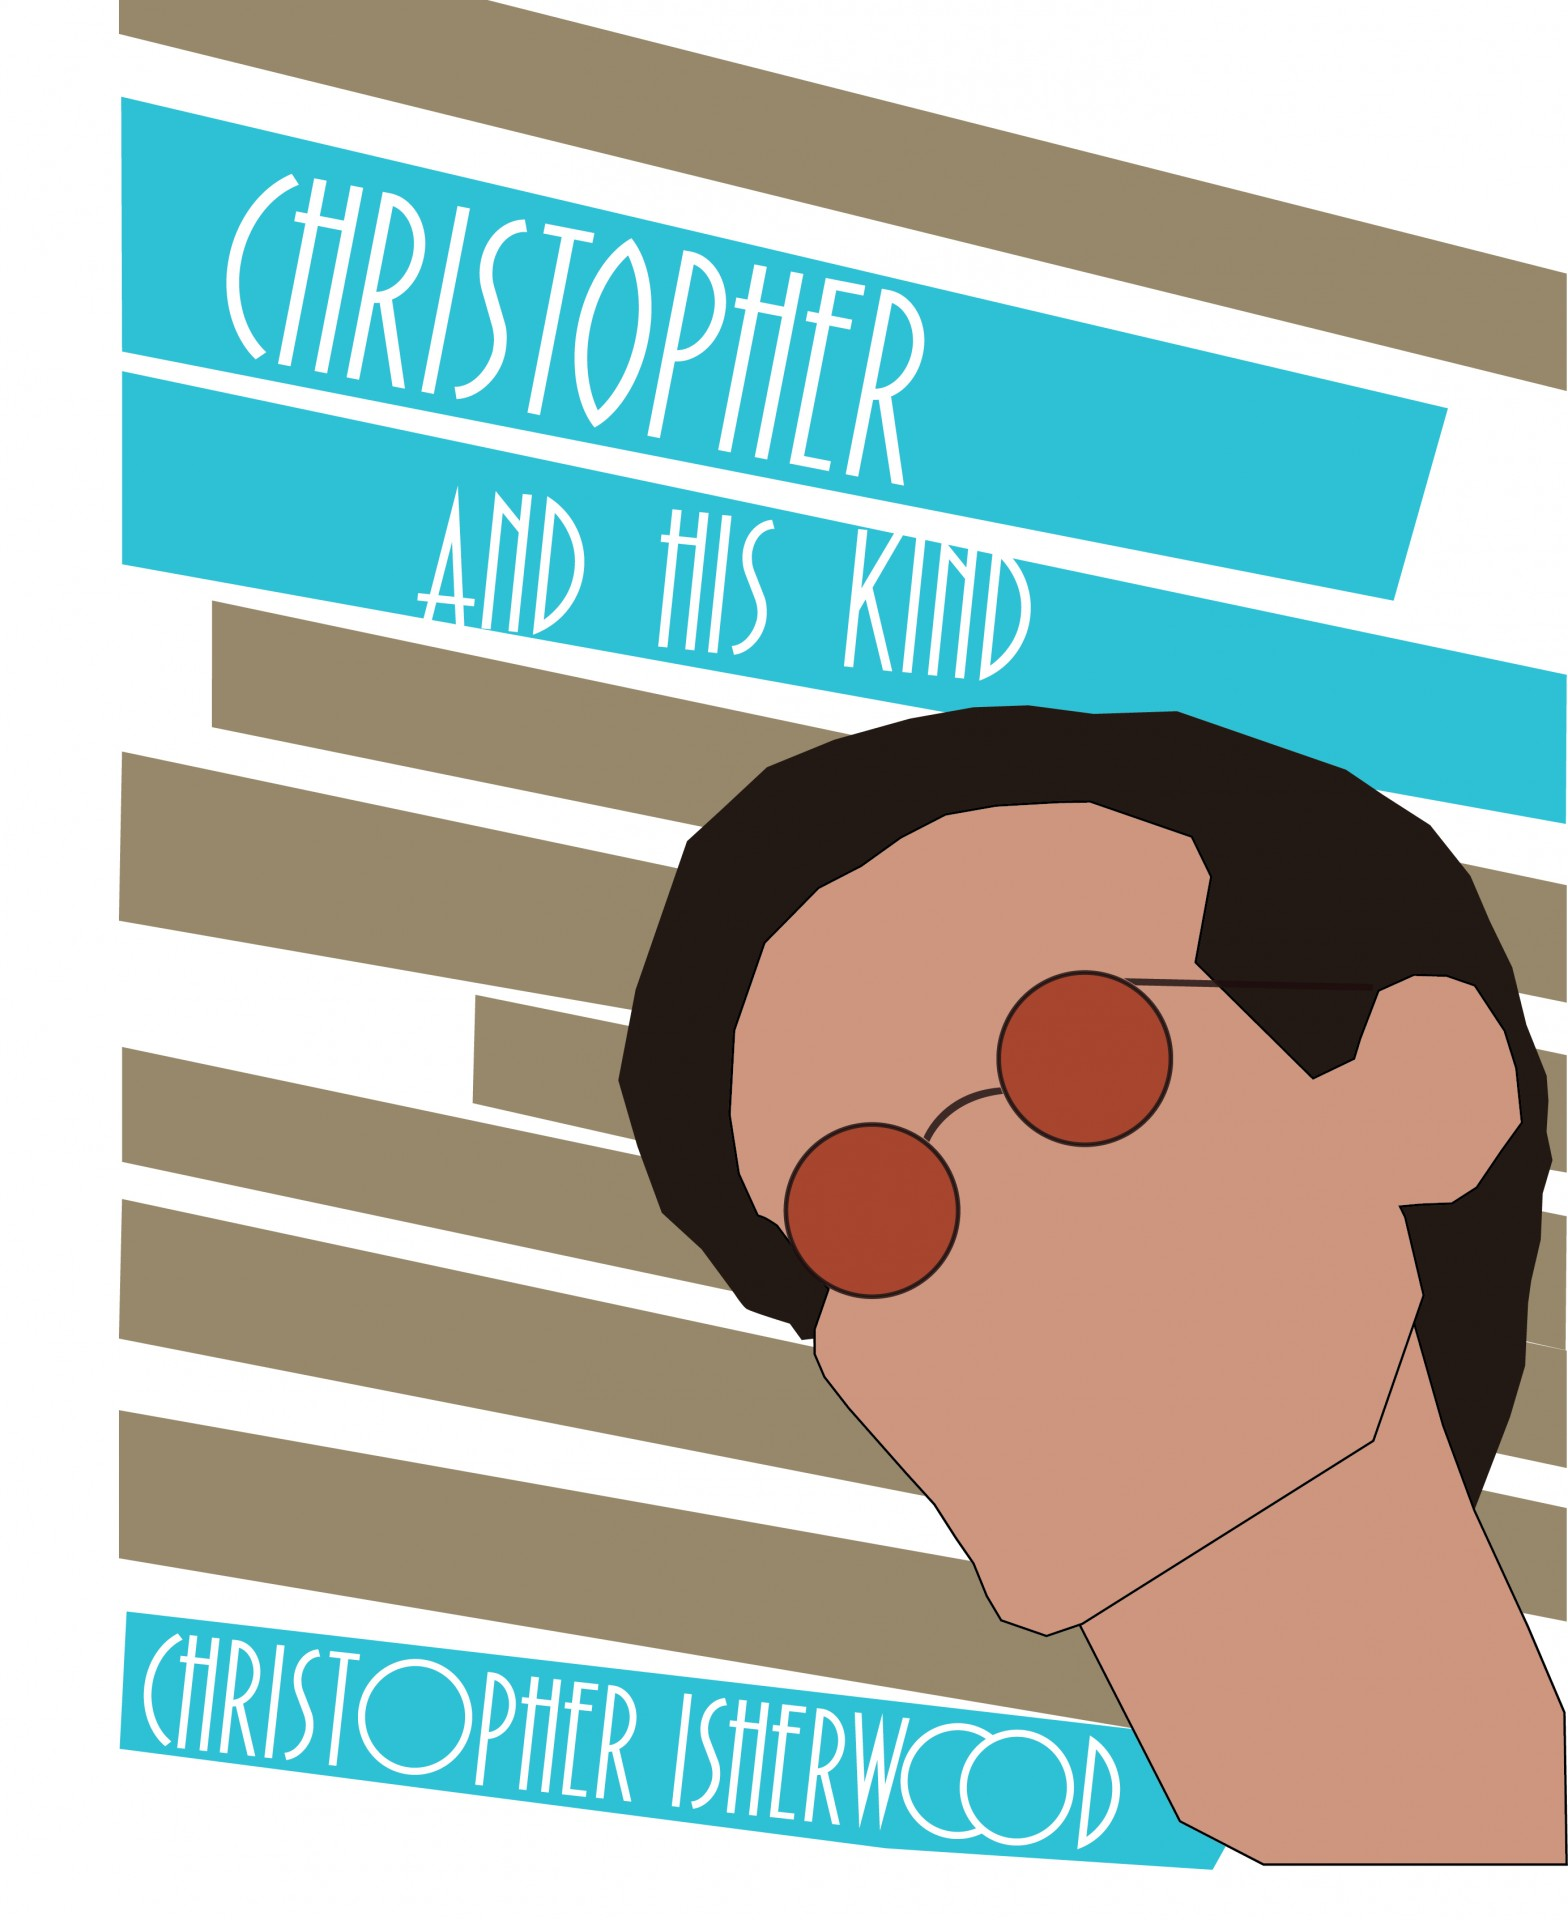 WGeary Christopher and His Kind Book Cover